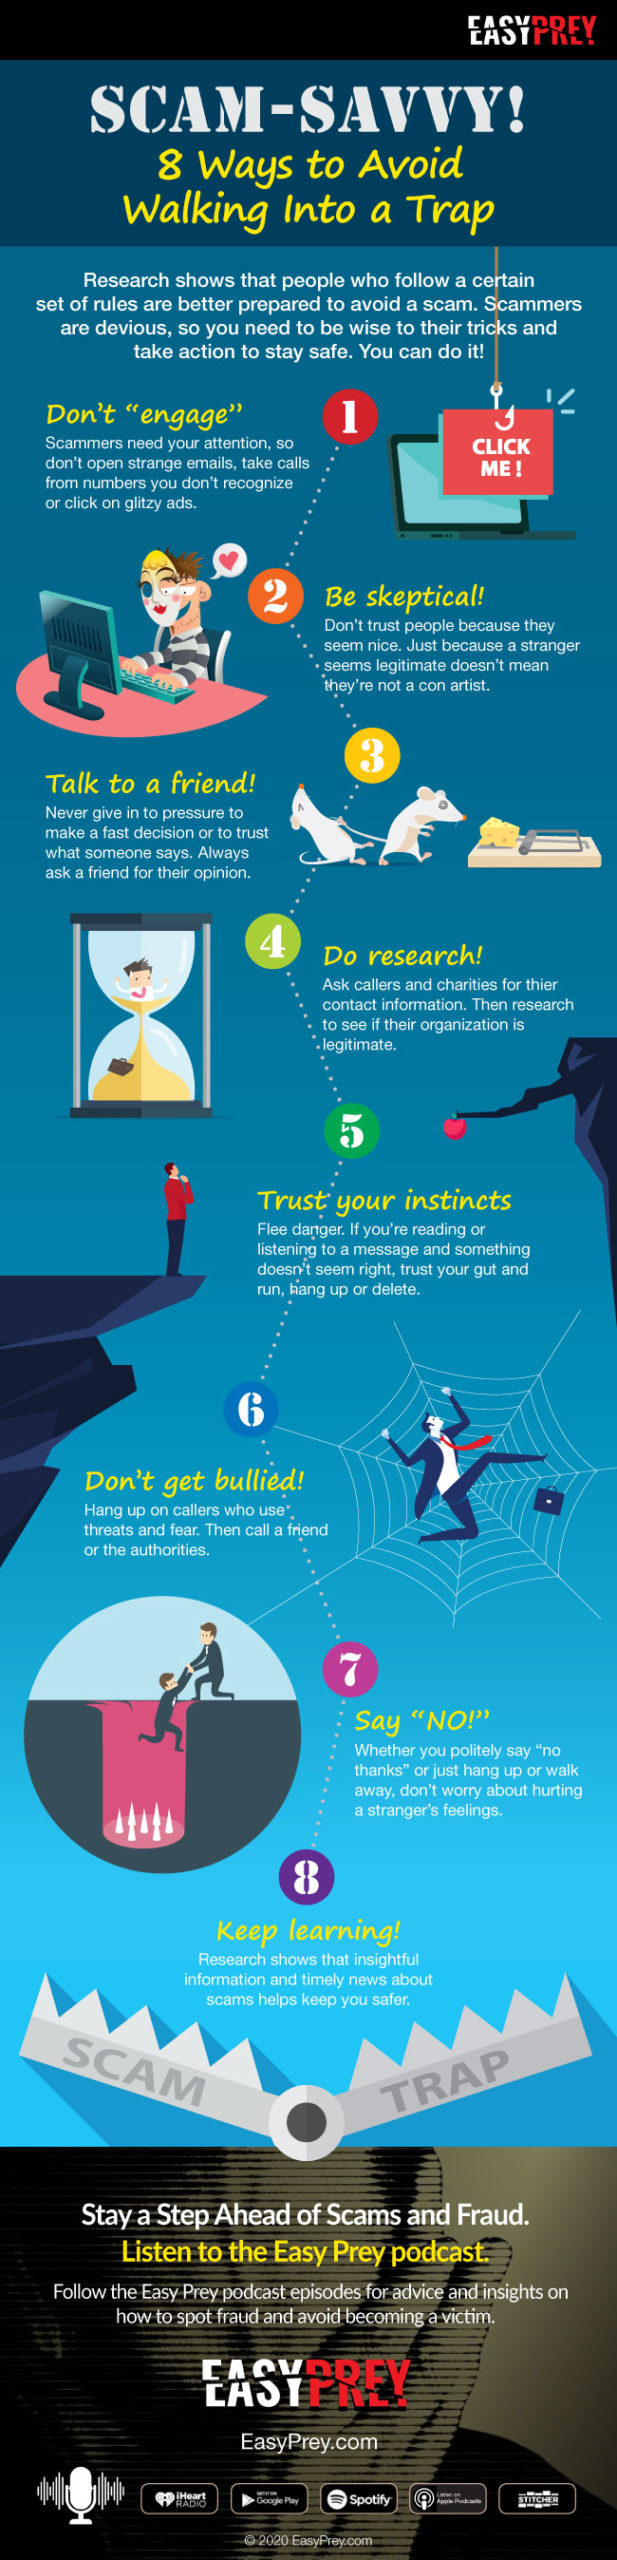 Scam Savvy Infographic